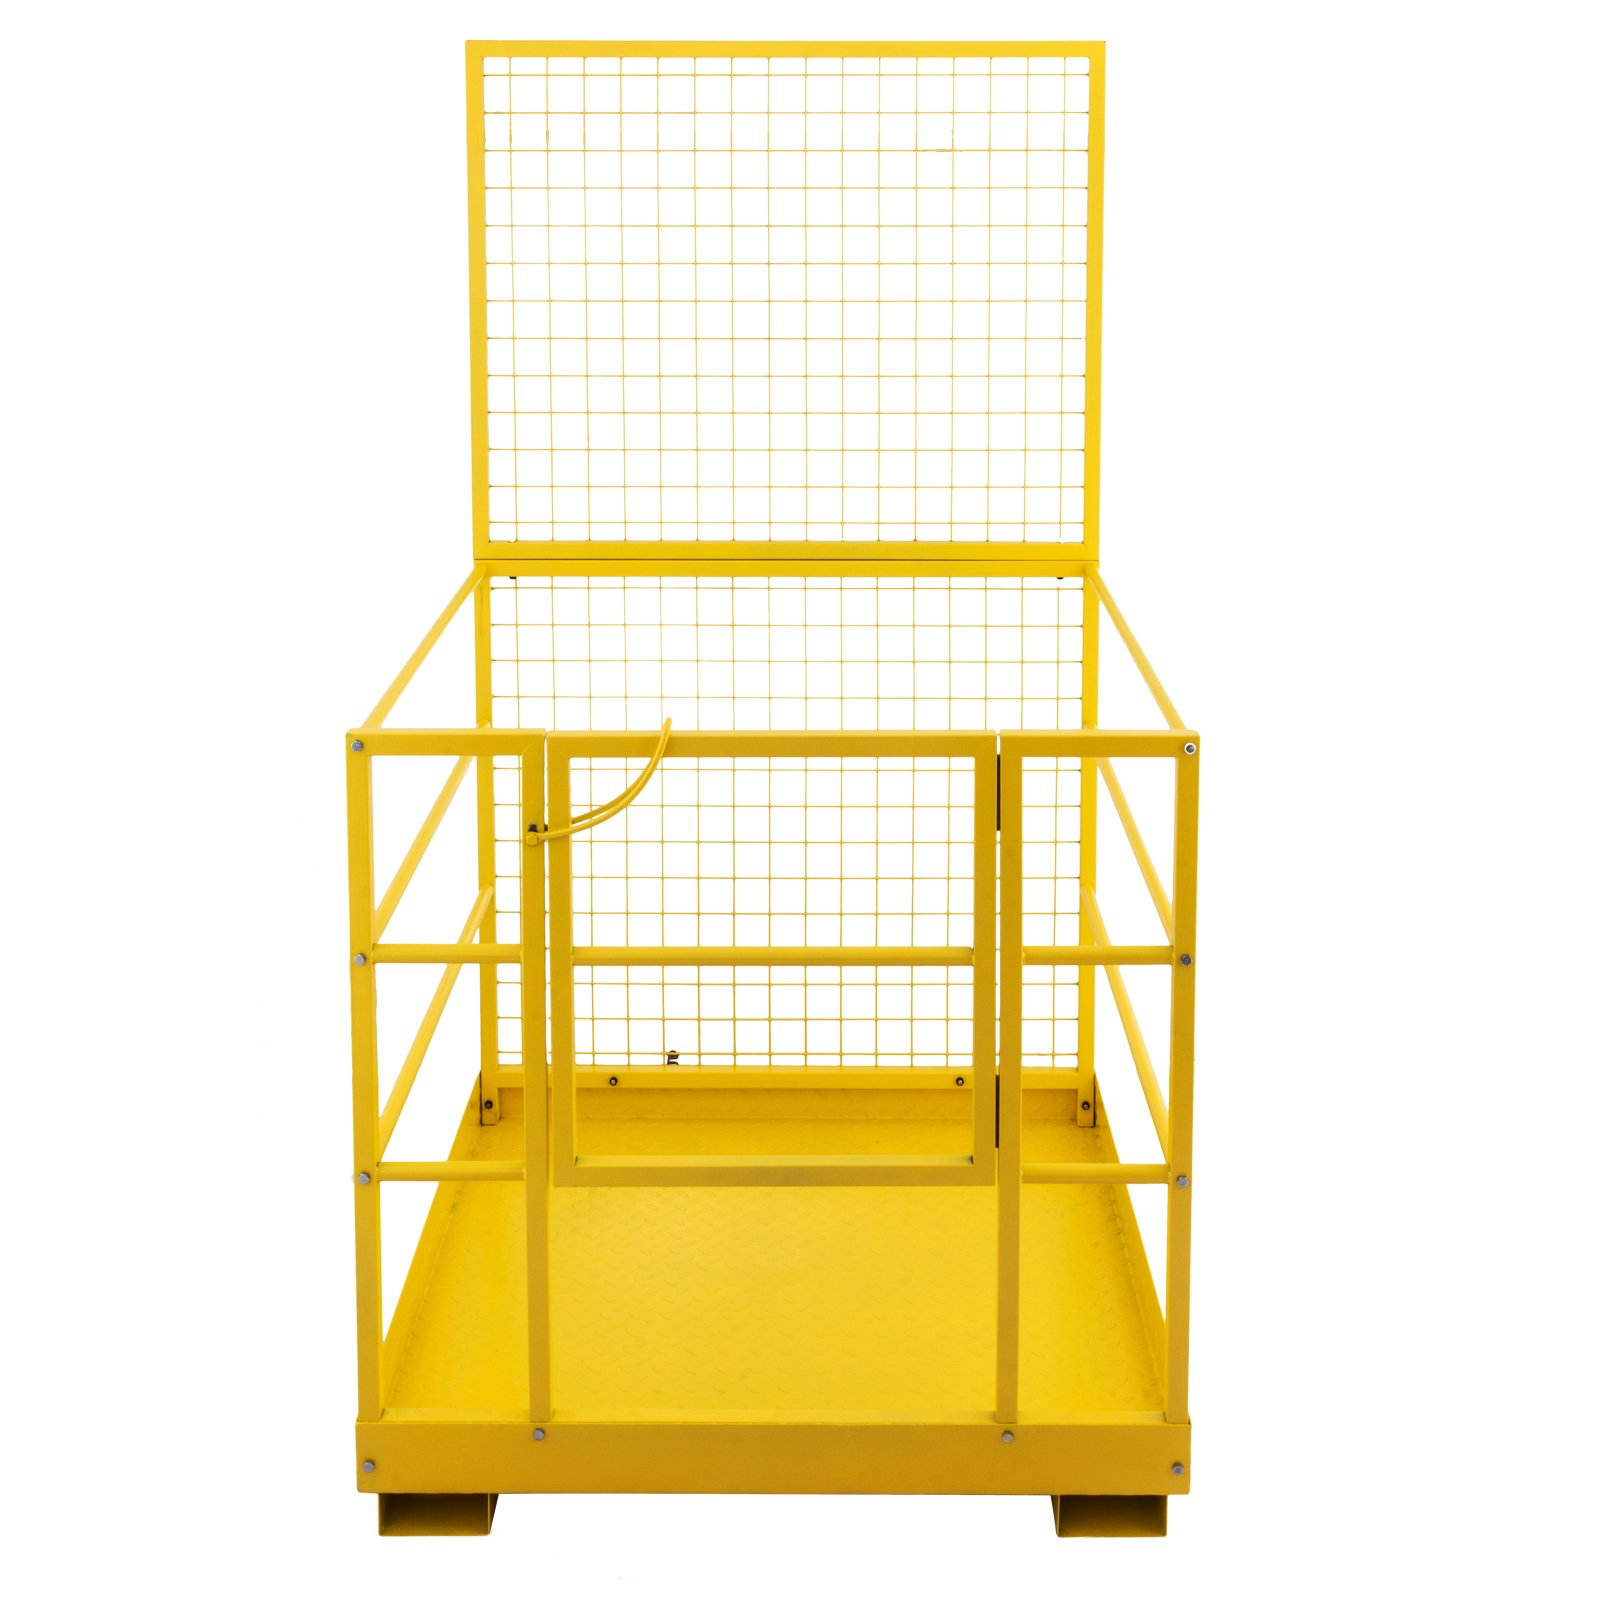 Mophorn Forklift Safety Cage 45 x 43 Inch Fork Lift Work Platform 1200lbs Capacity Heavy Duty Steel Forklift Safety Lift Basket Aerial Fence Rails Yellow Pallet loader Fork lift Safety Cage (45''x43'')